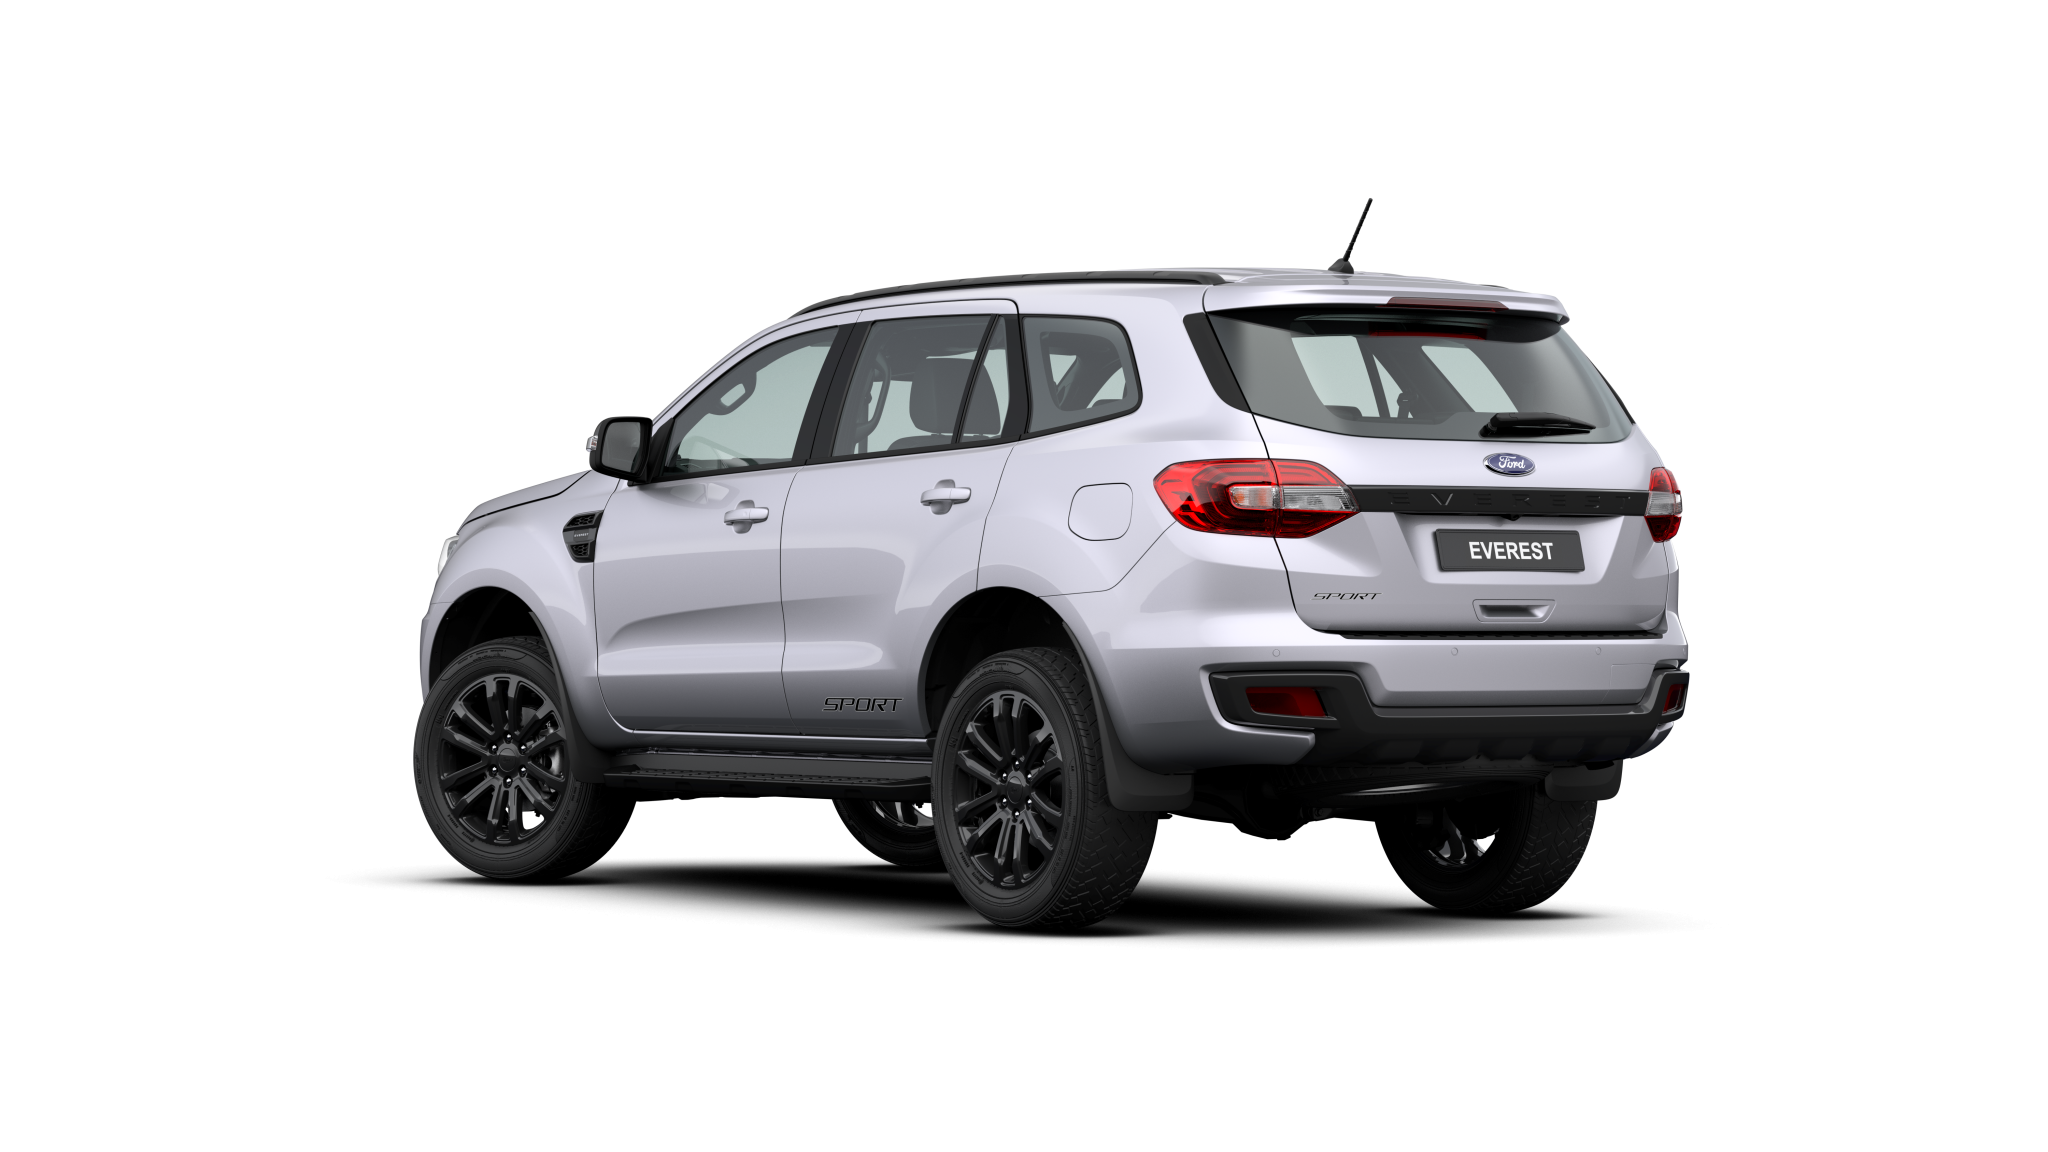 FORD EVEREST SPORT U375ICA_TH_19D_SPORT_2000_4x2_Aluminium_05_RR34_L